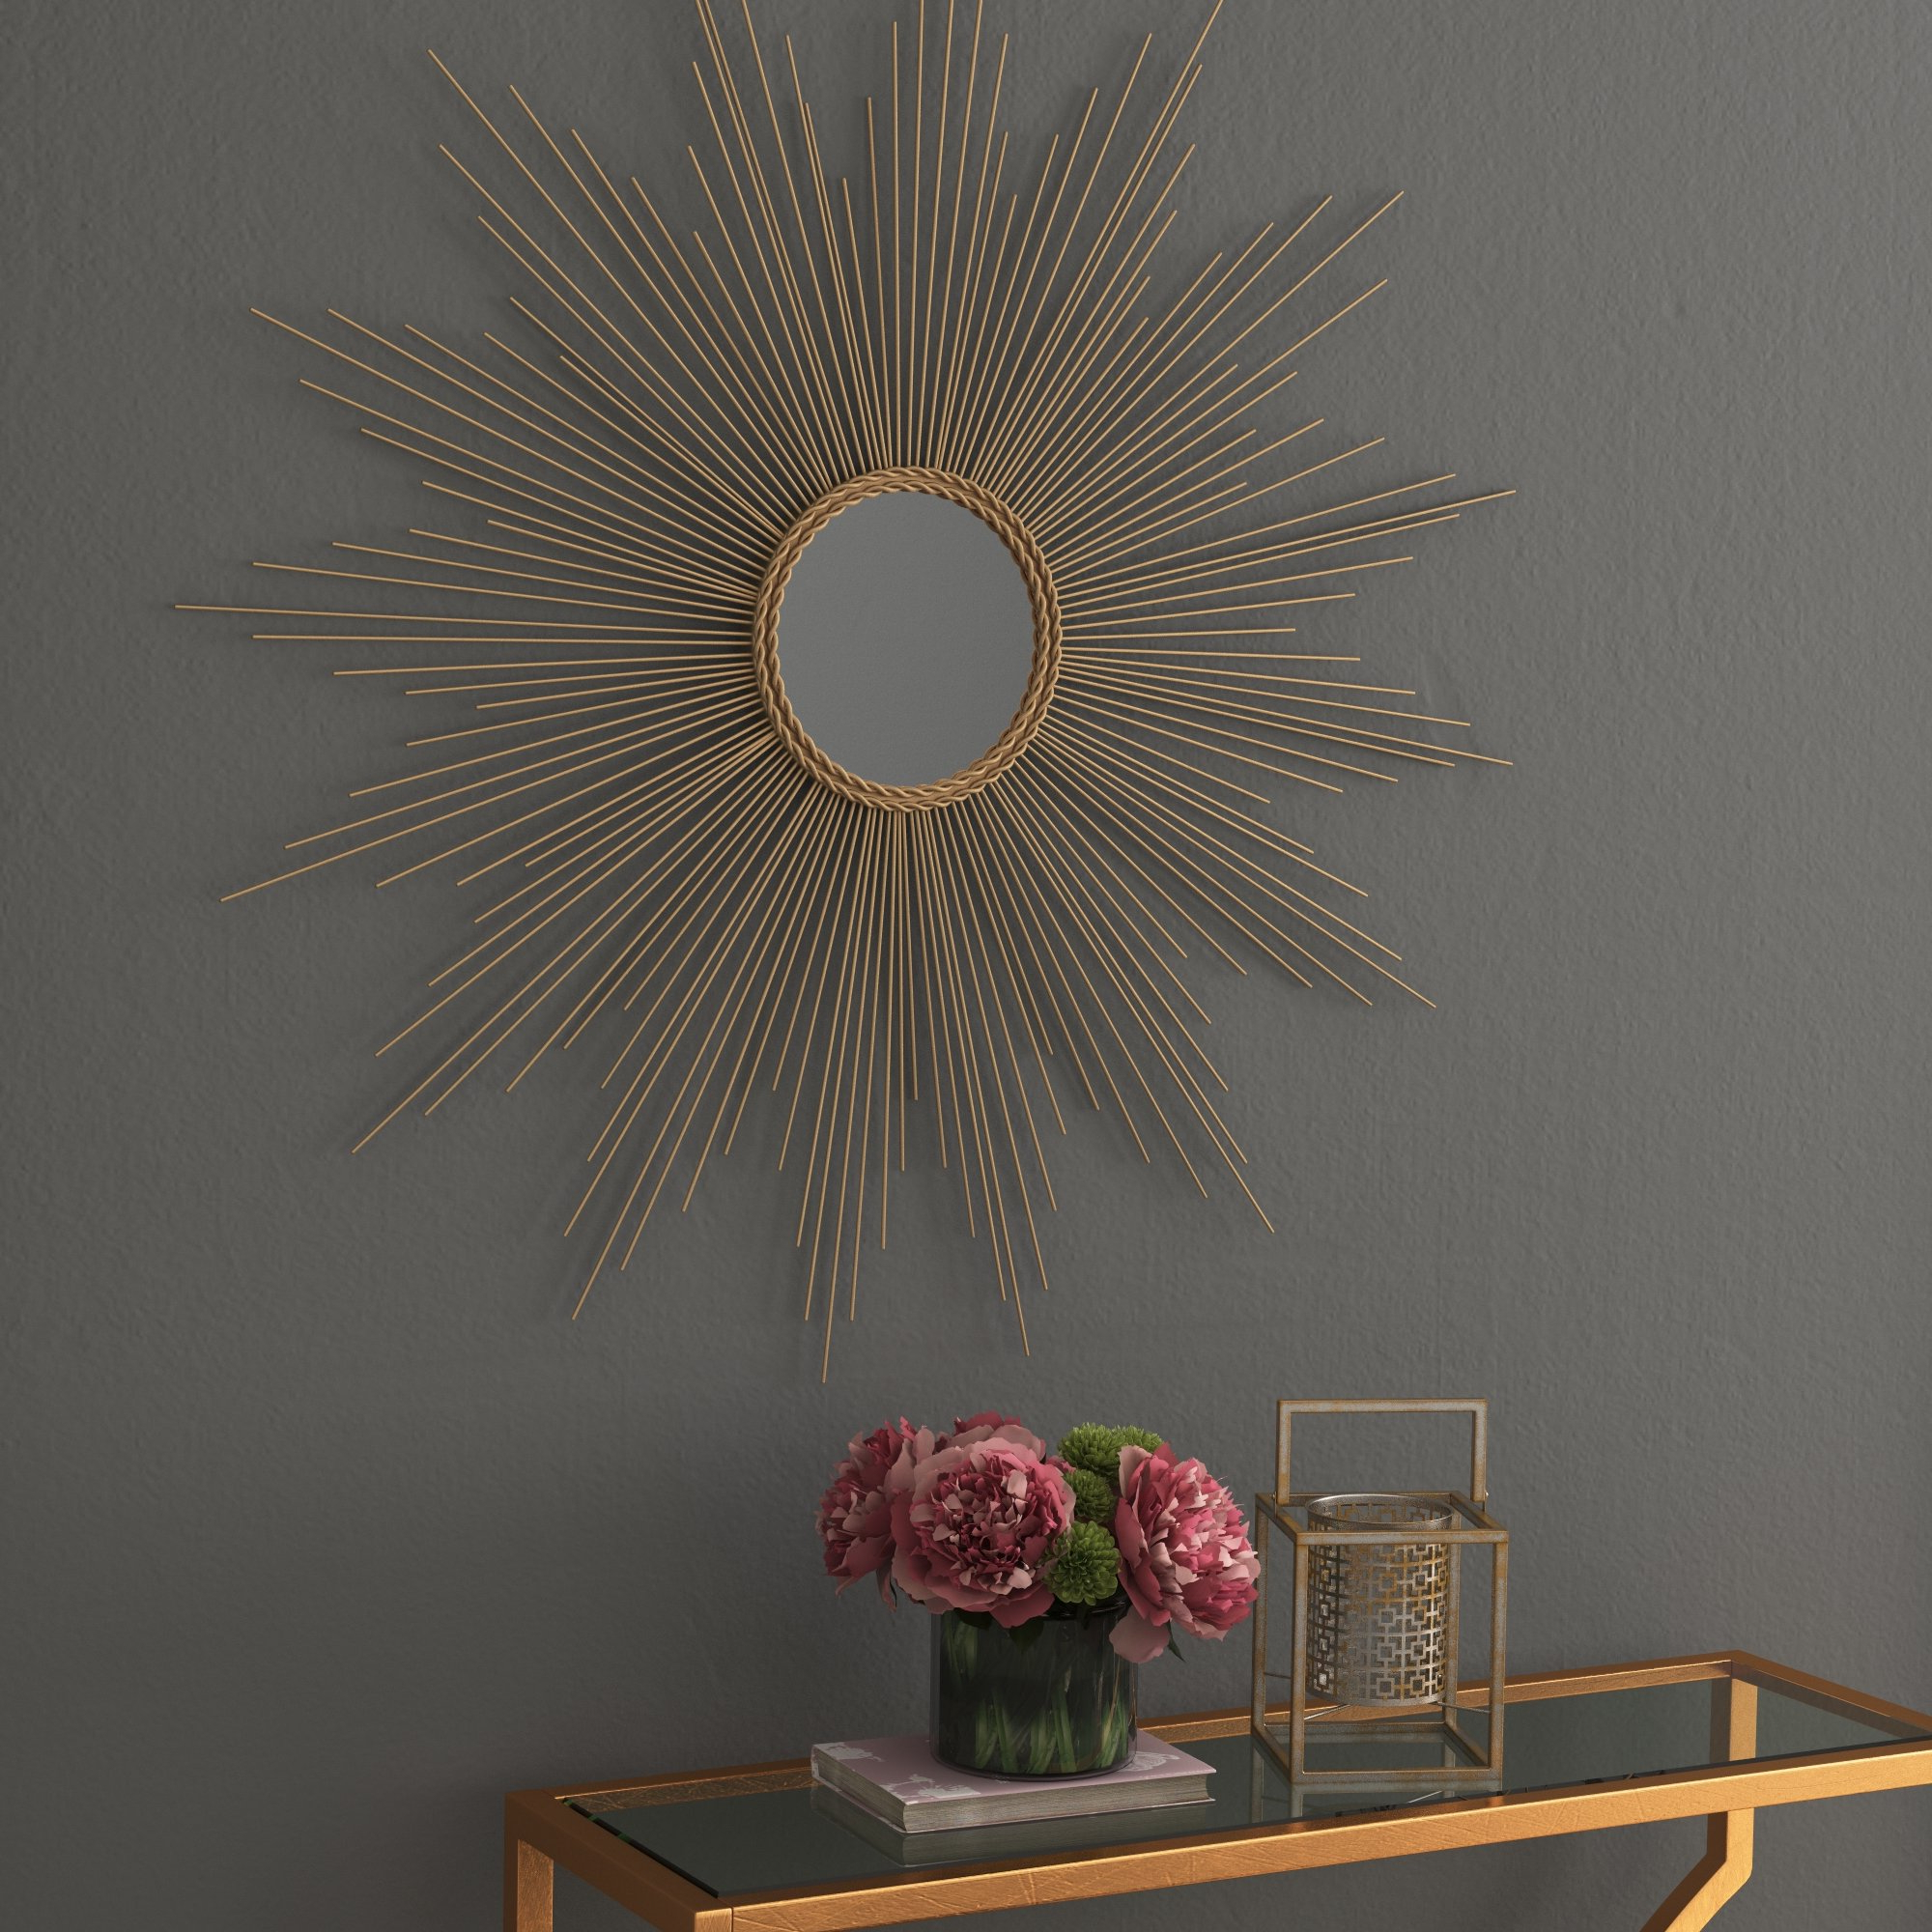 Traditional Metal Wall Mirror Intended For Most Popular Traditional Metal Wall Mirrors (View 2 of 20)